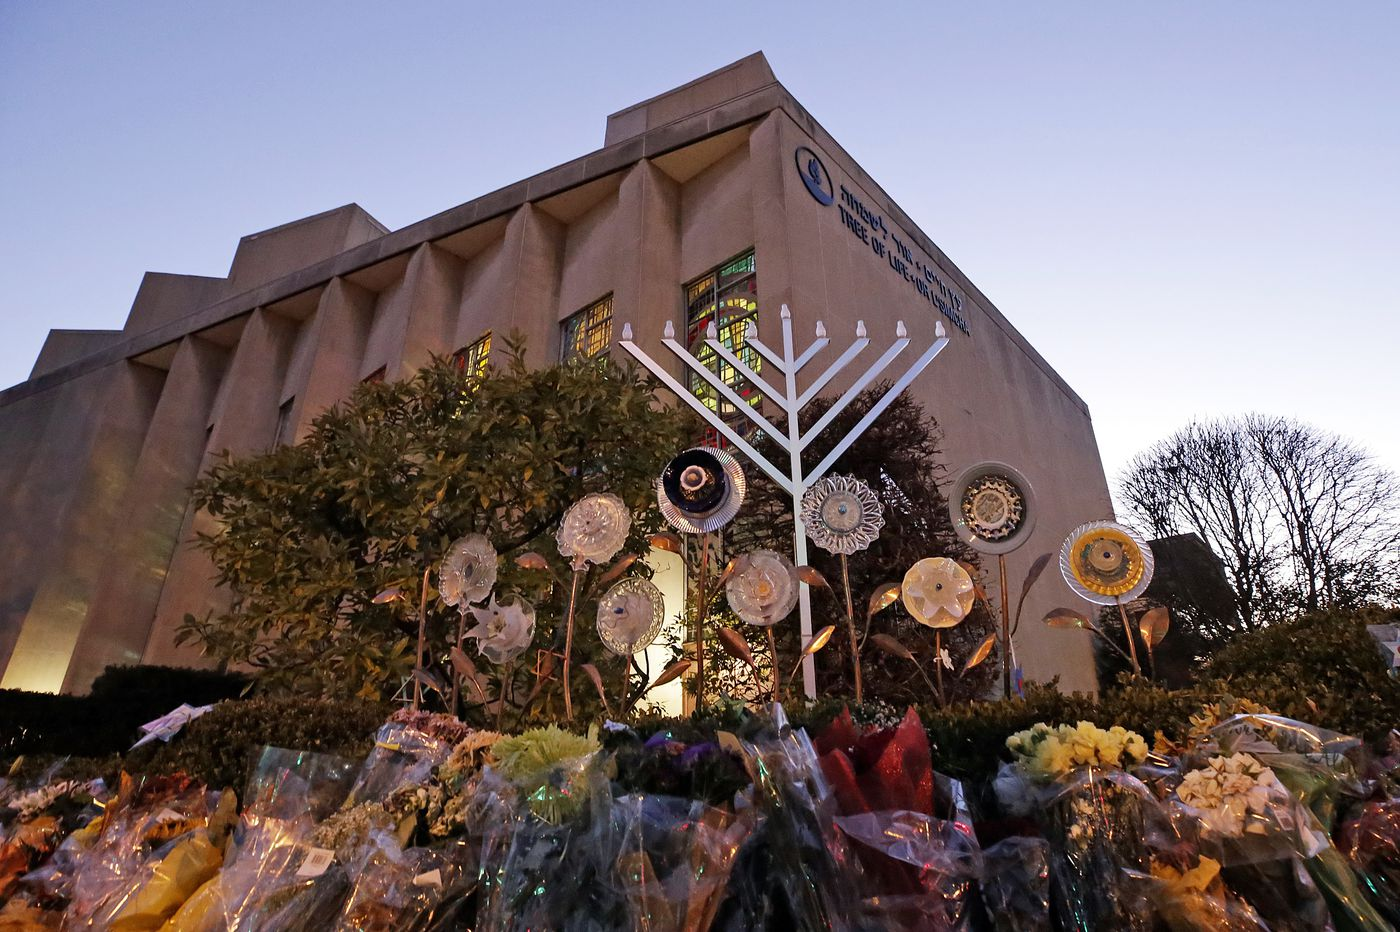 Rabbi to Pa. legislators: Pray we are 'not guilty of inaction' after Tree of Life shooting